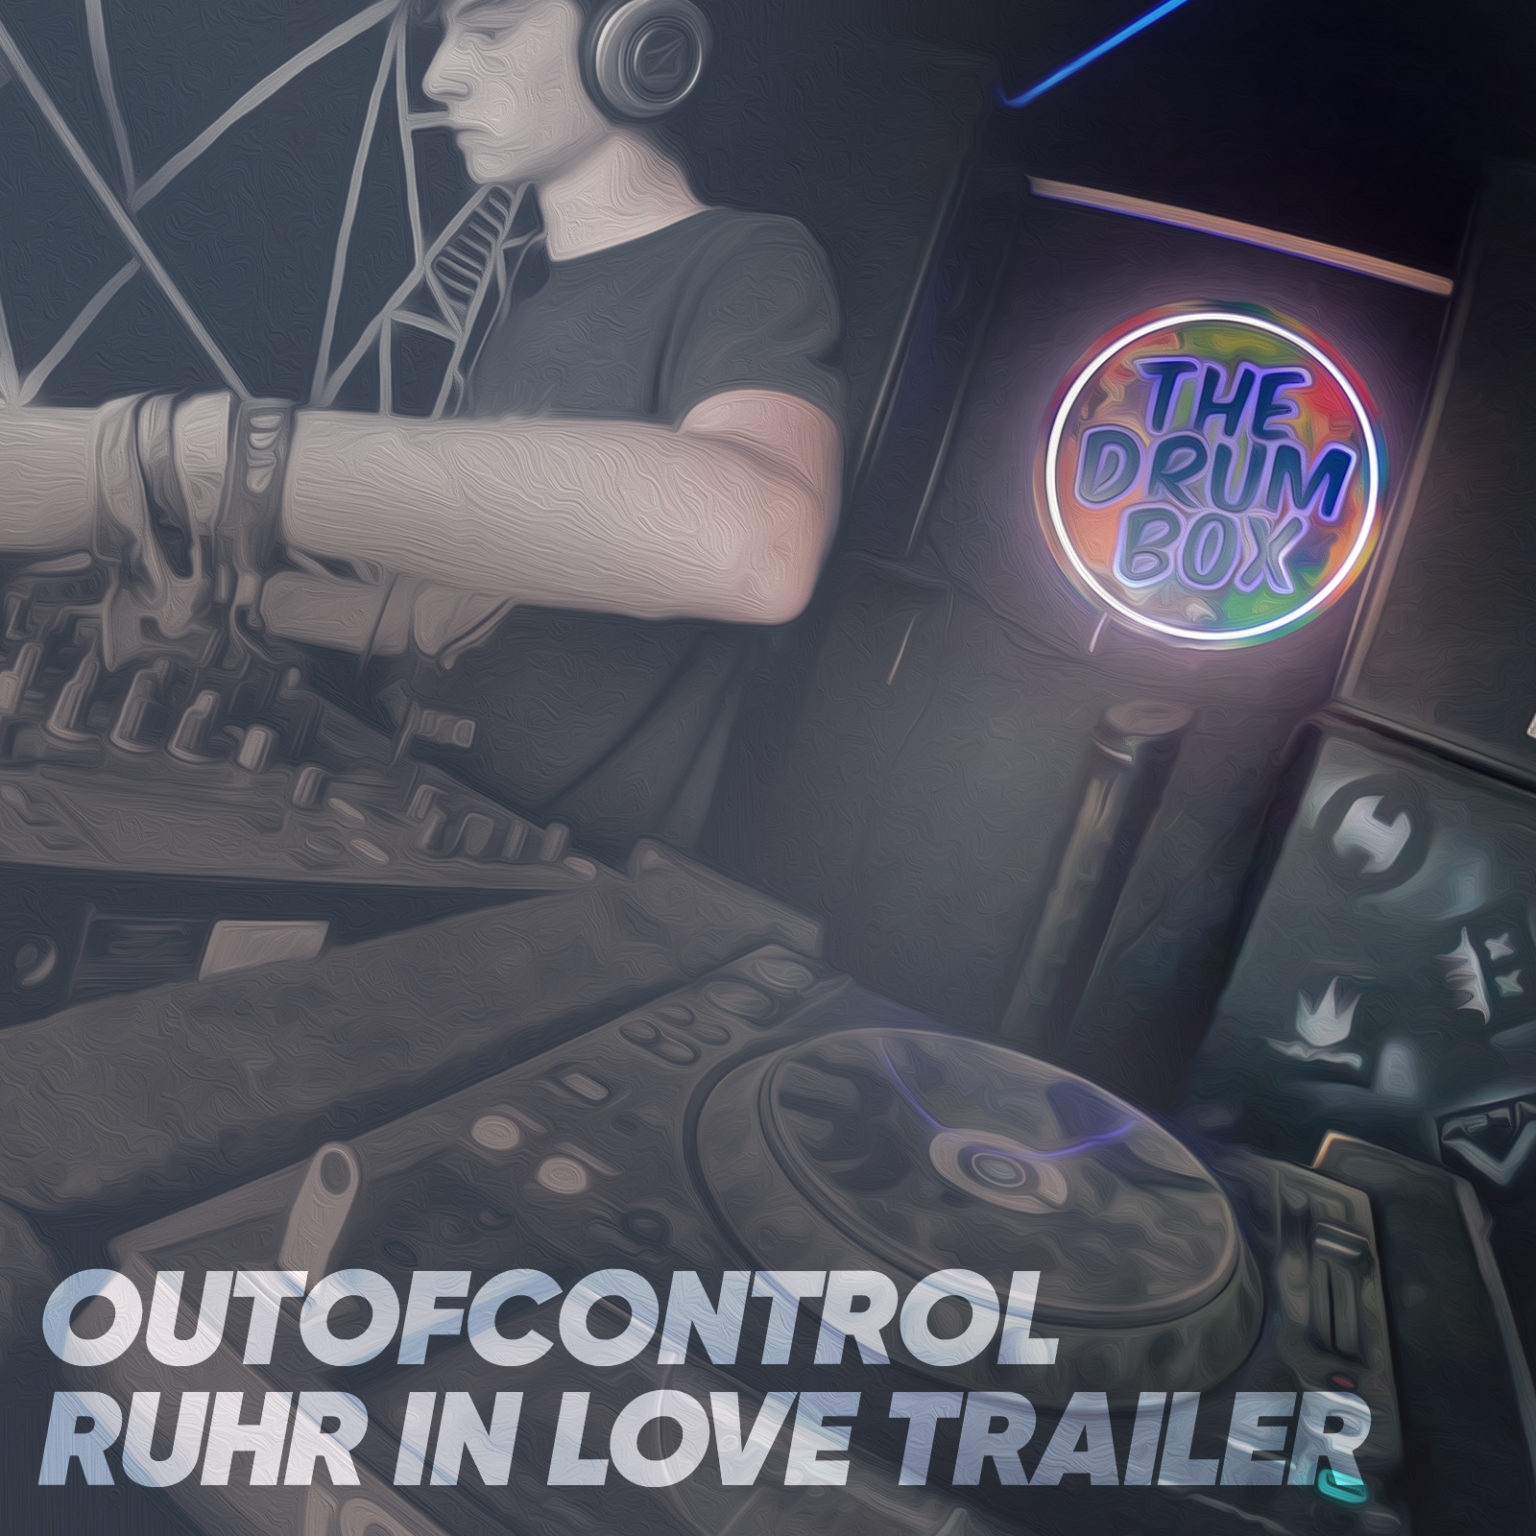 OutofControl - Ruhr in Love Trailer